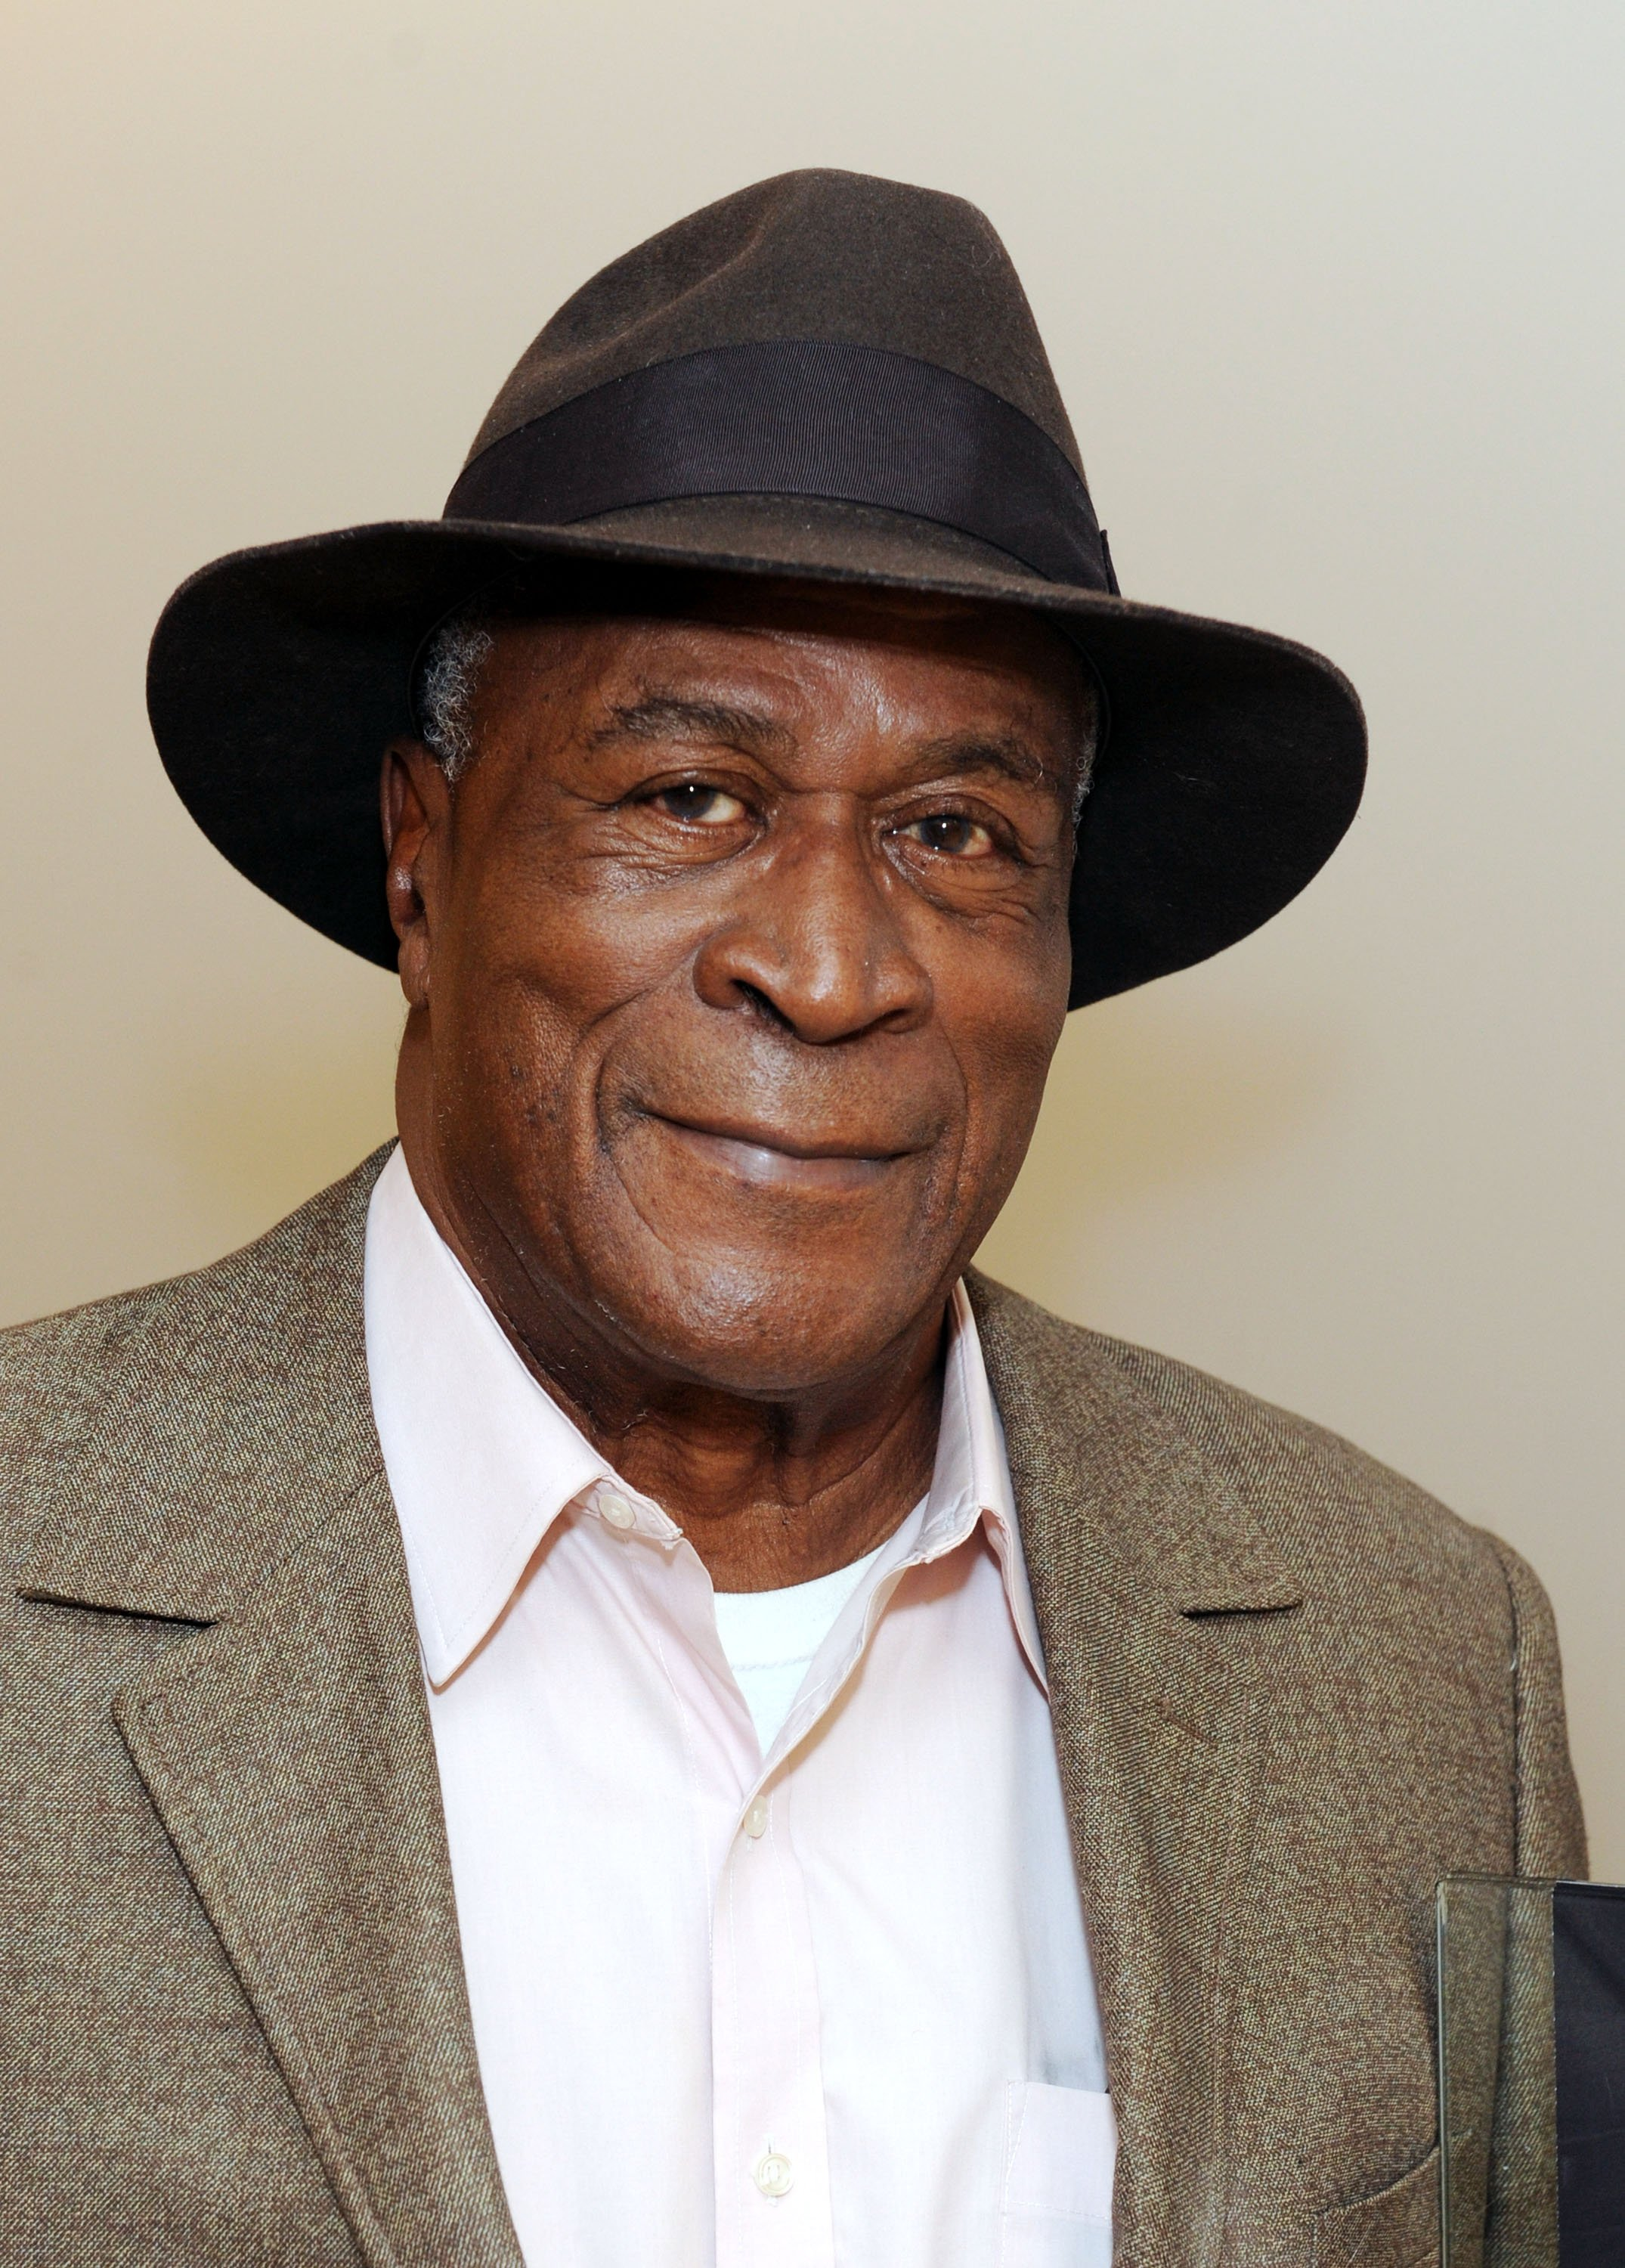 John Amos at the Althea screening and panel discussion on Oct. 5, 2015 in New York City | Photo: Getty Images